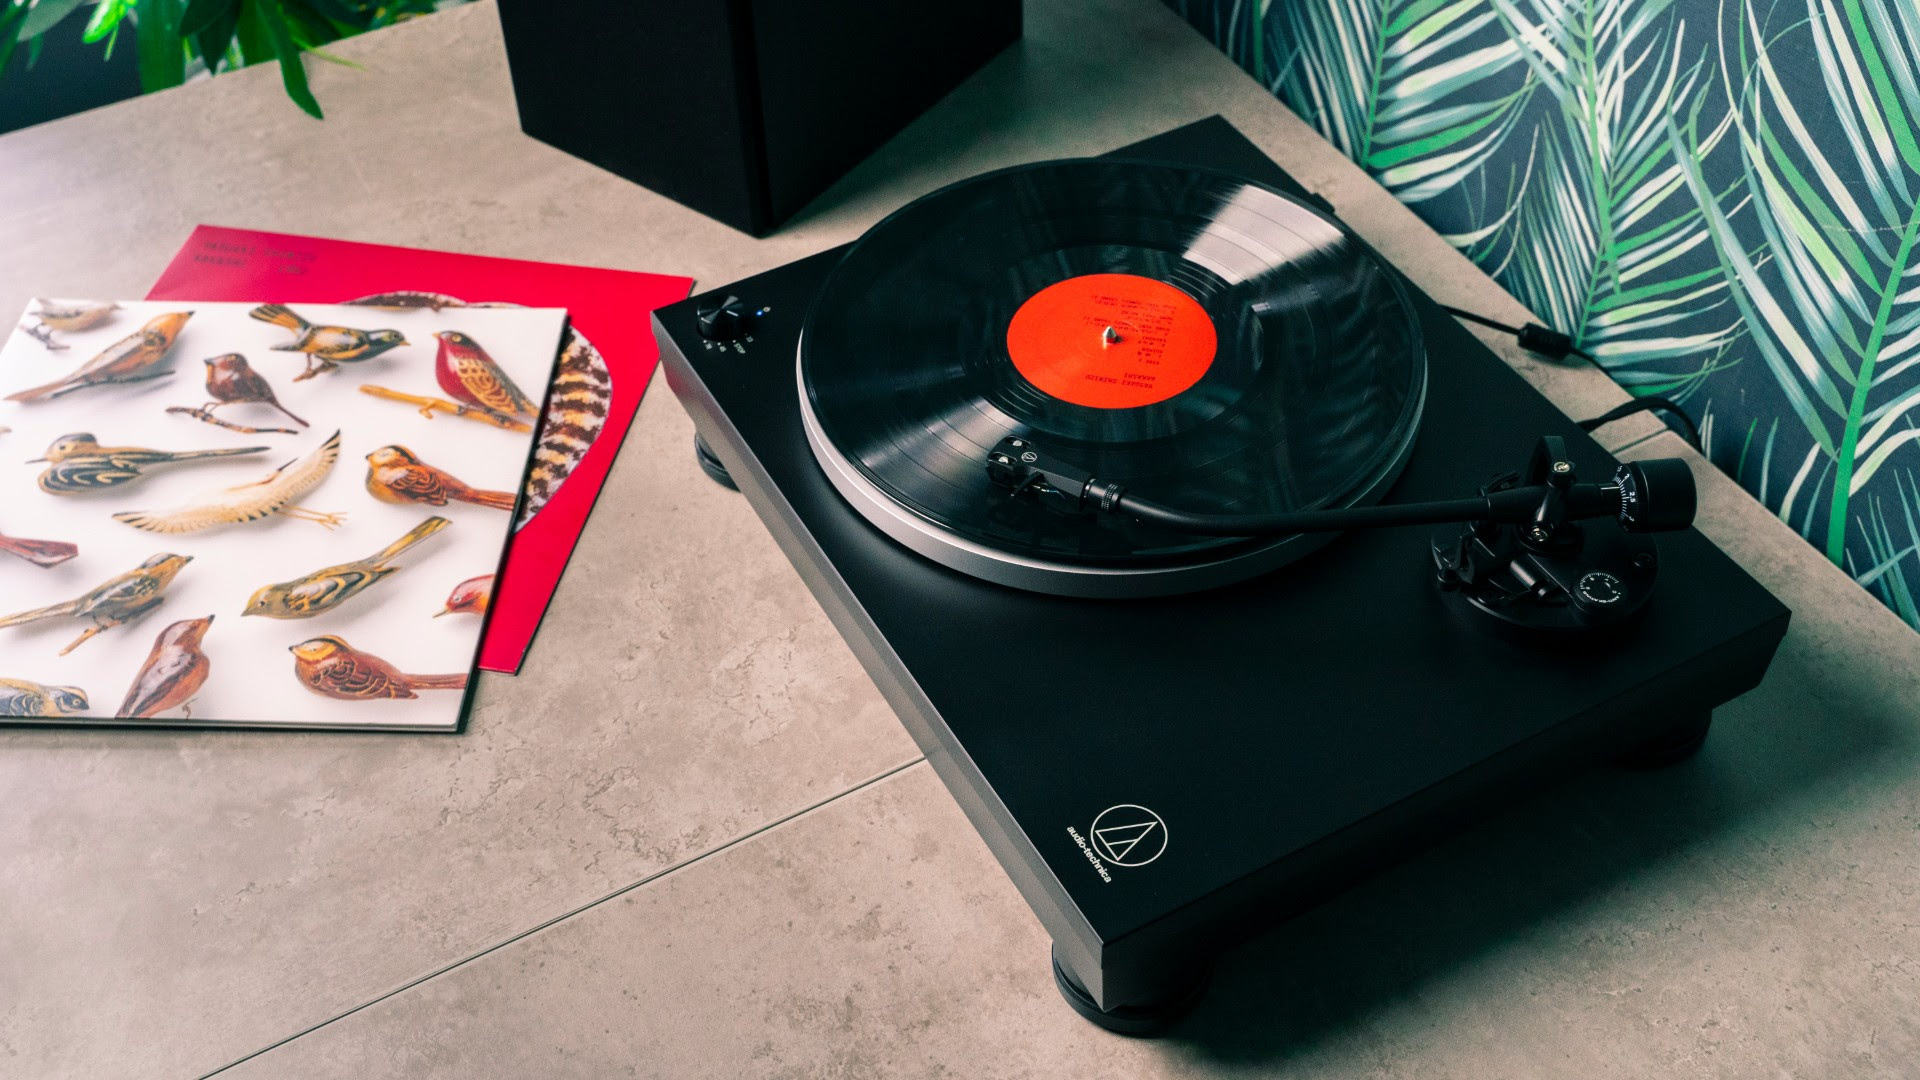 Latest Audio-Technica turntable makes playing vinyl records easy